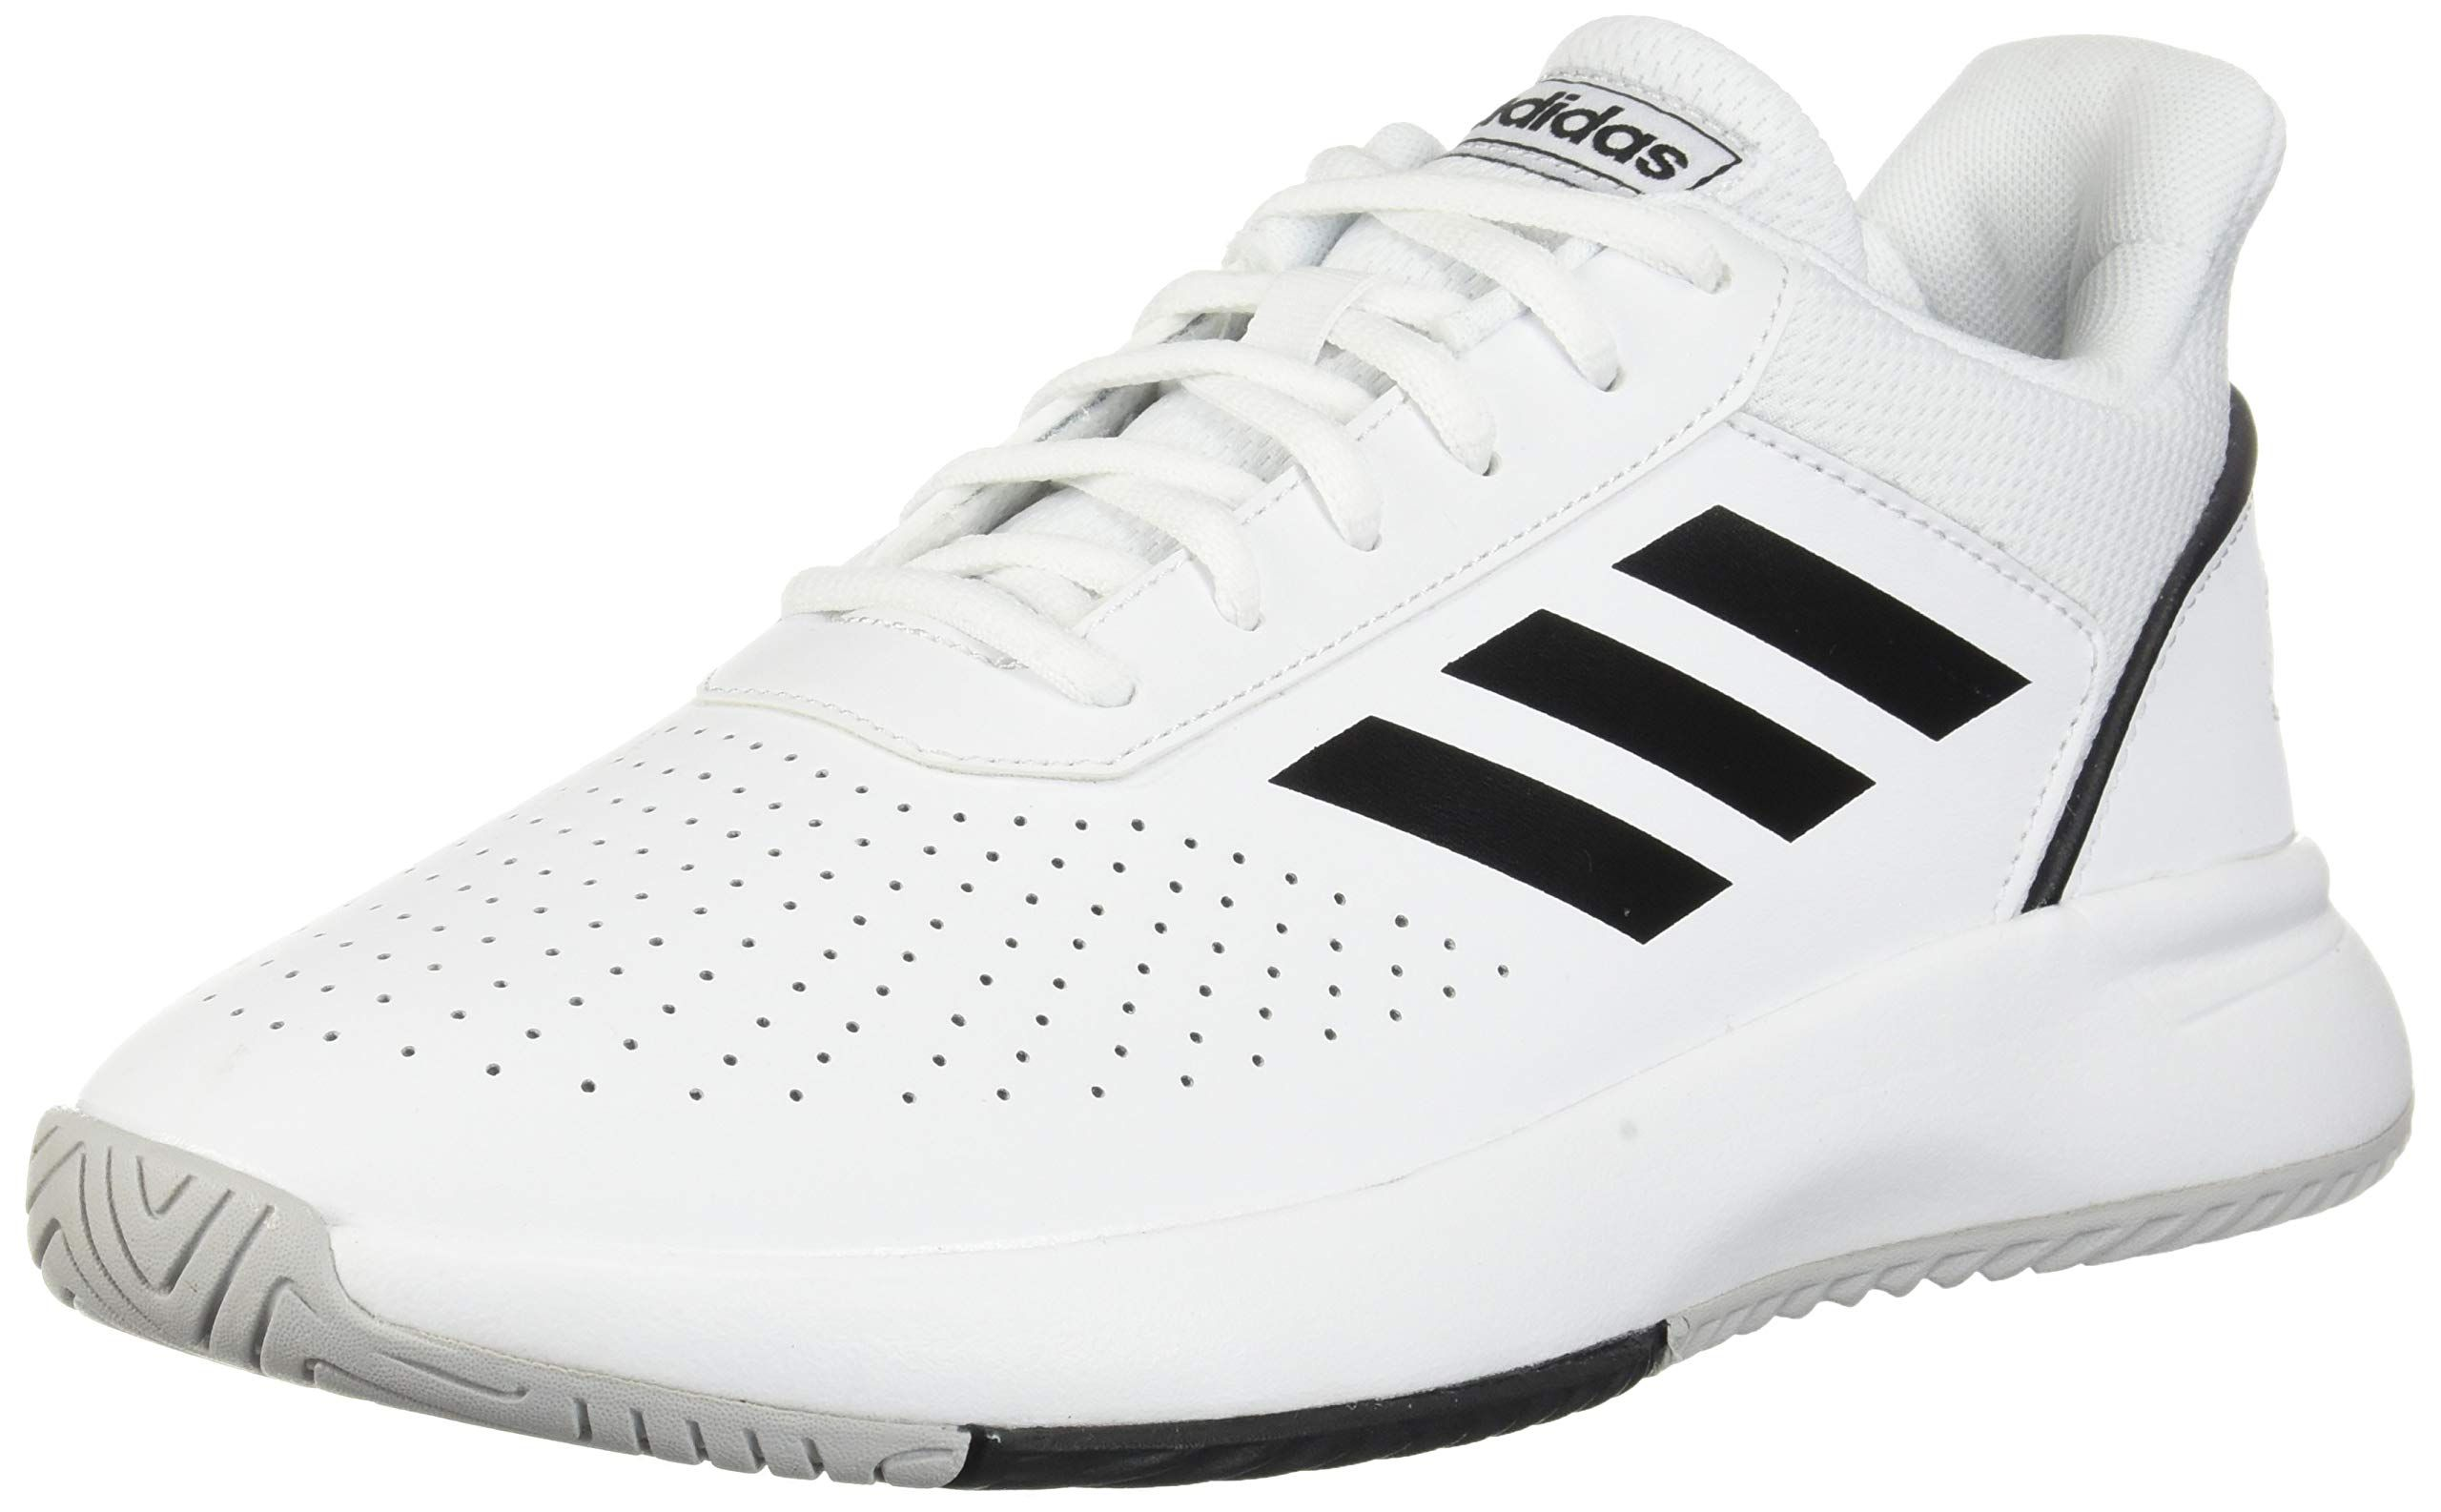 Adidas Mens Courtsmash Ankle Hig Sneakers Fashion Tennis Shoes Sneakers White